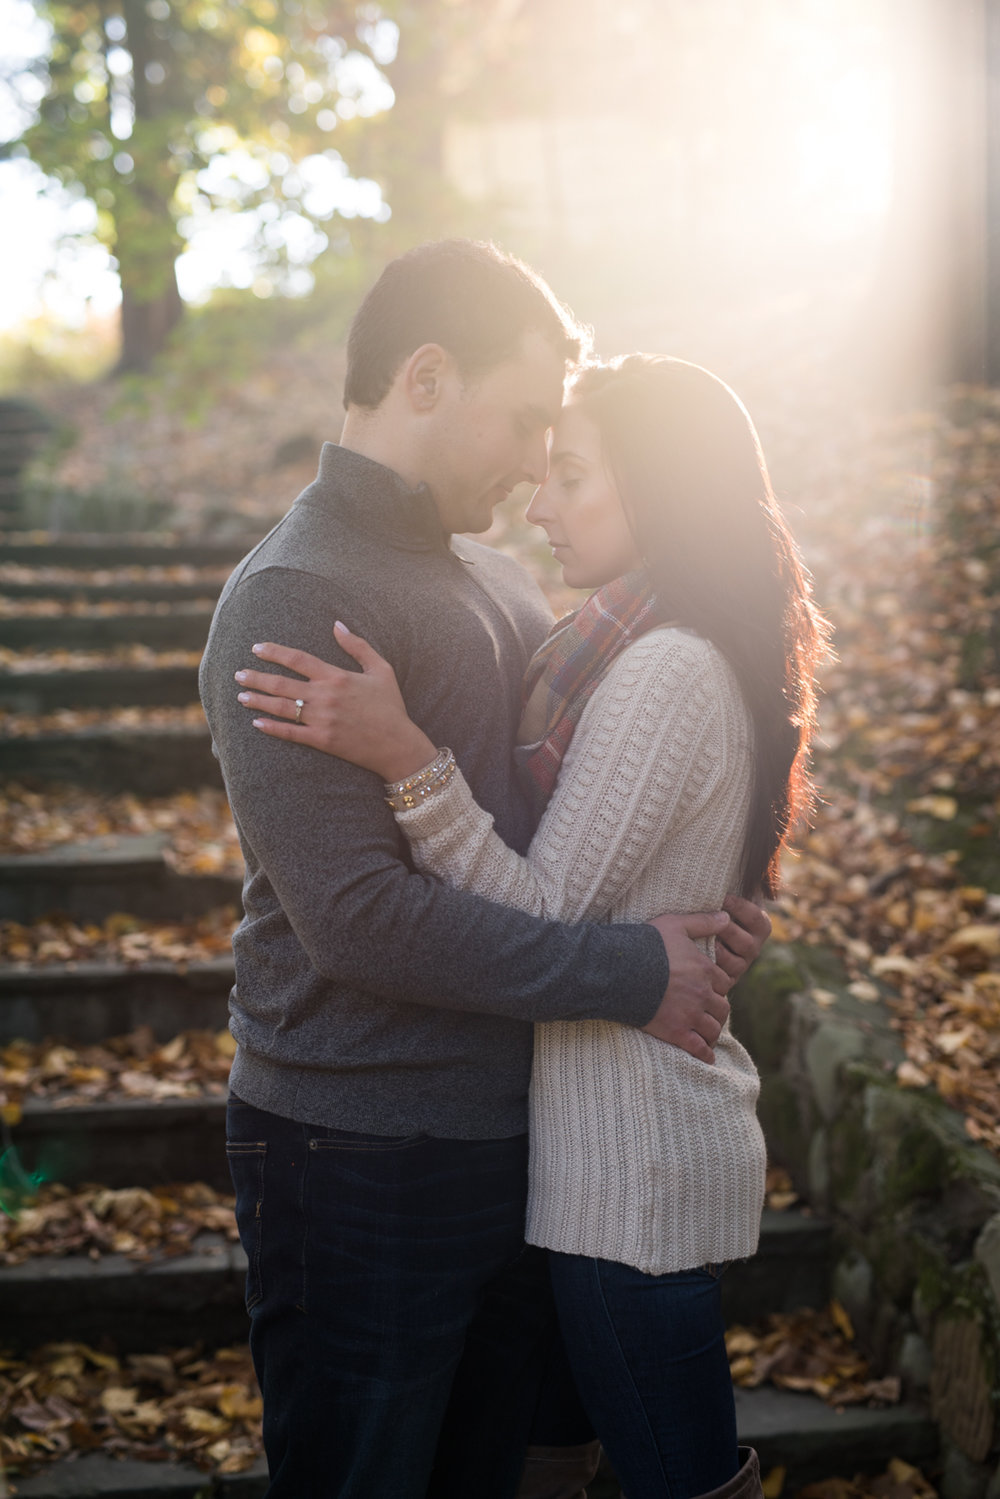 Jeff+Melissa- Booth Park Engagement Session with Dog- New Jersey- Olivia Christina Photo-3.JPG